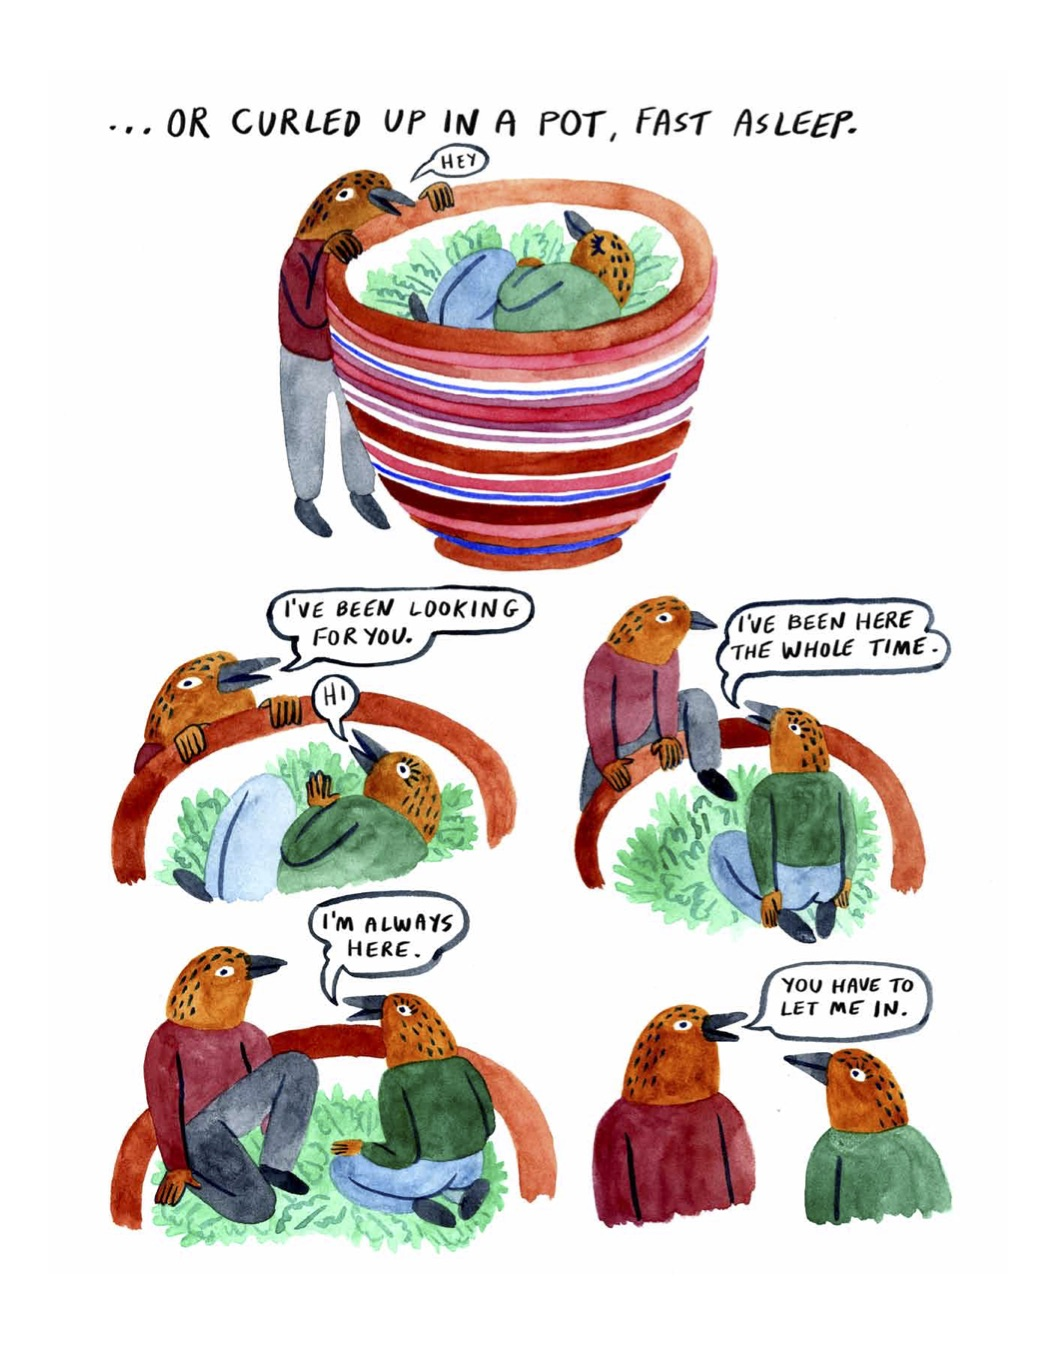 Hot Dog Taste Test by Lisa Hanawalt (Drawn & Quarterly)